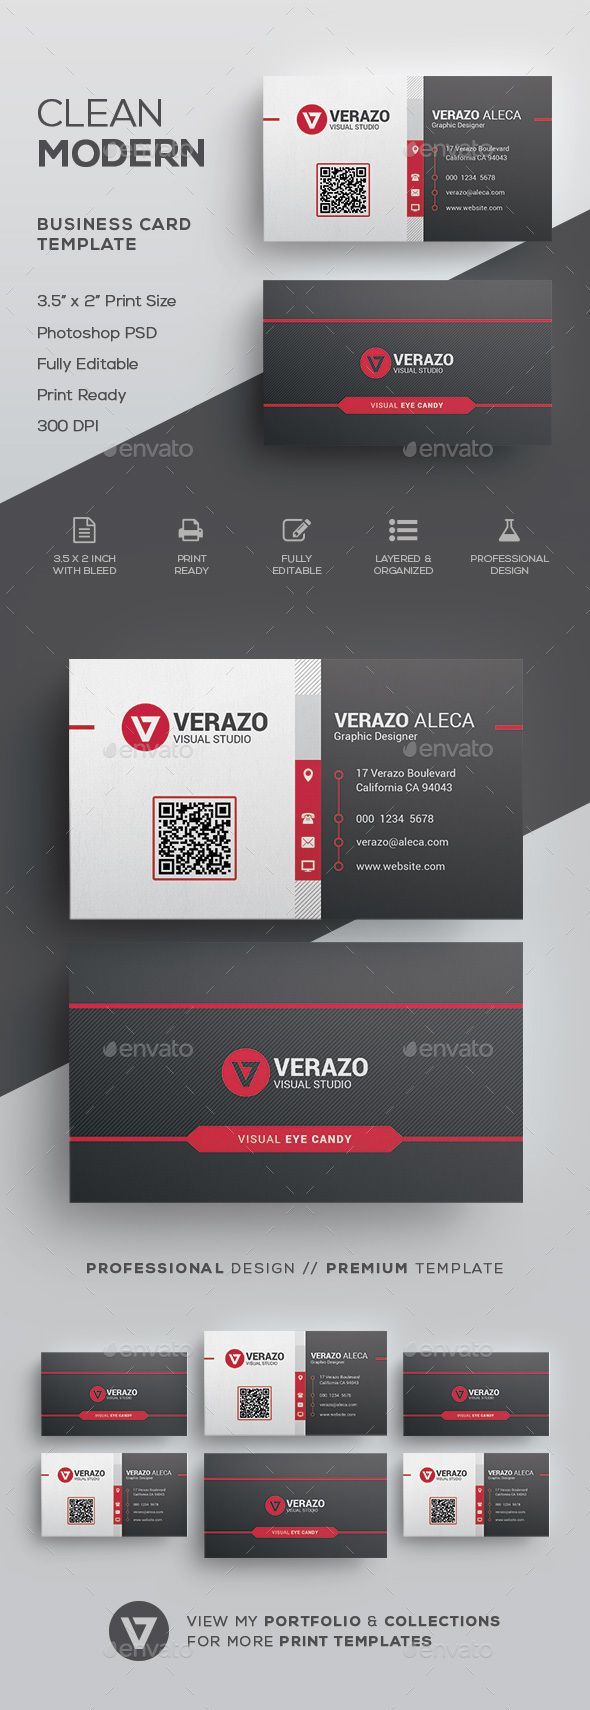 Creative Modern Business Card Template - #Corporate #Business #Cards Download here: https://graphicriver.net/item/creative-modern-business-card-template/19704349?ref=alena994